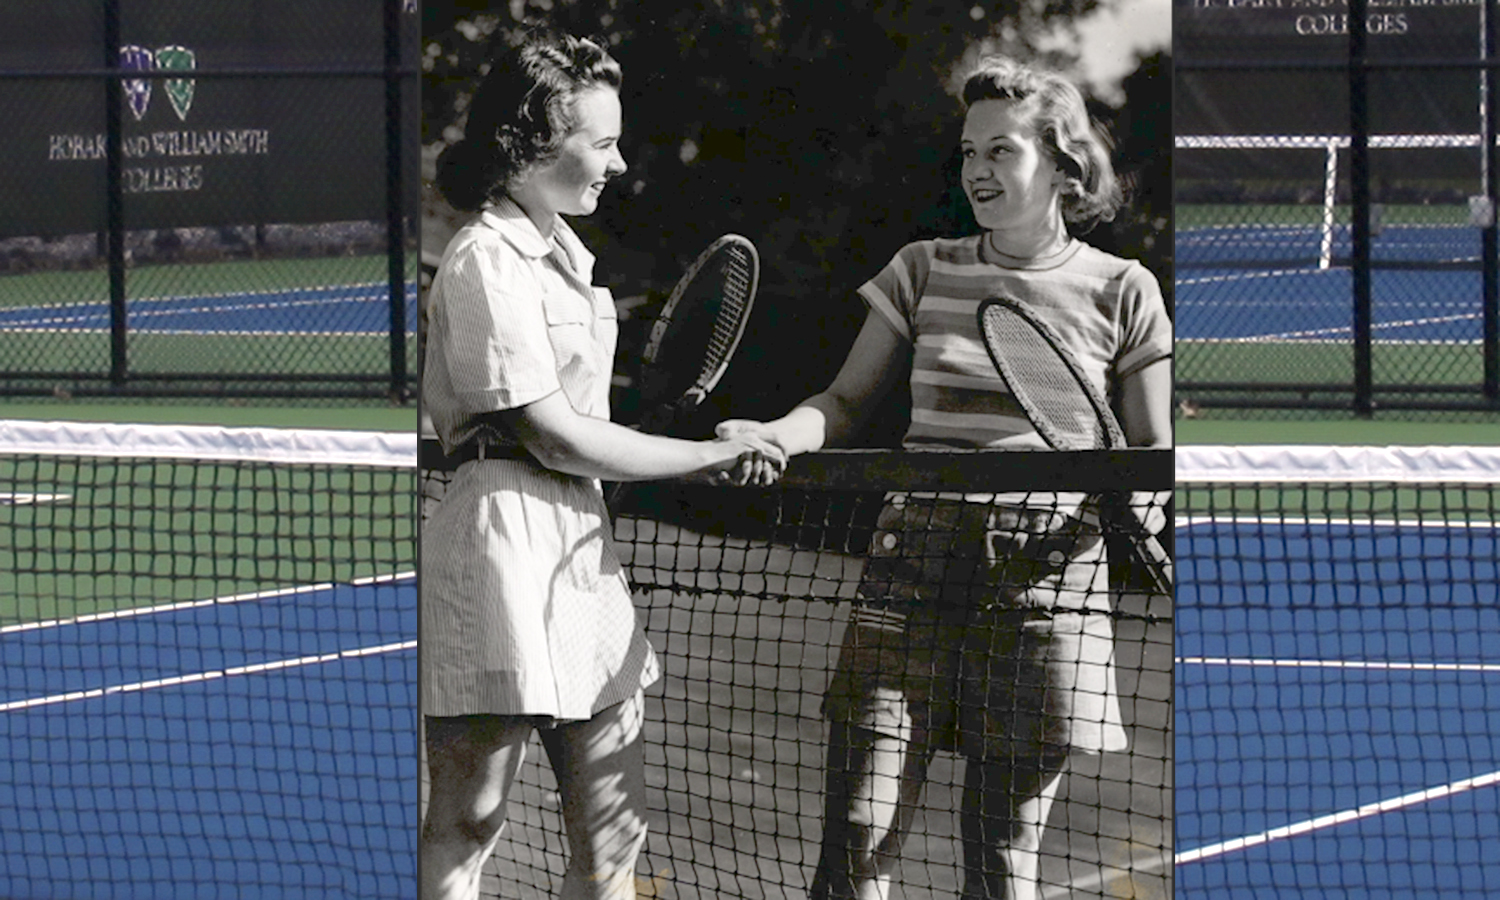 The HWS Tennis center was originally constructed in 1958 and newly renovated this year. Pictured above are two William Smith Tennis players from 1918 shaking hands on the court after a match.